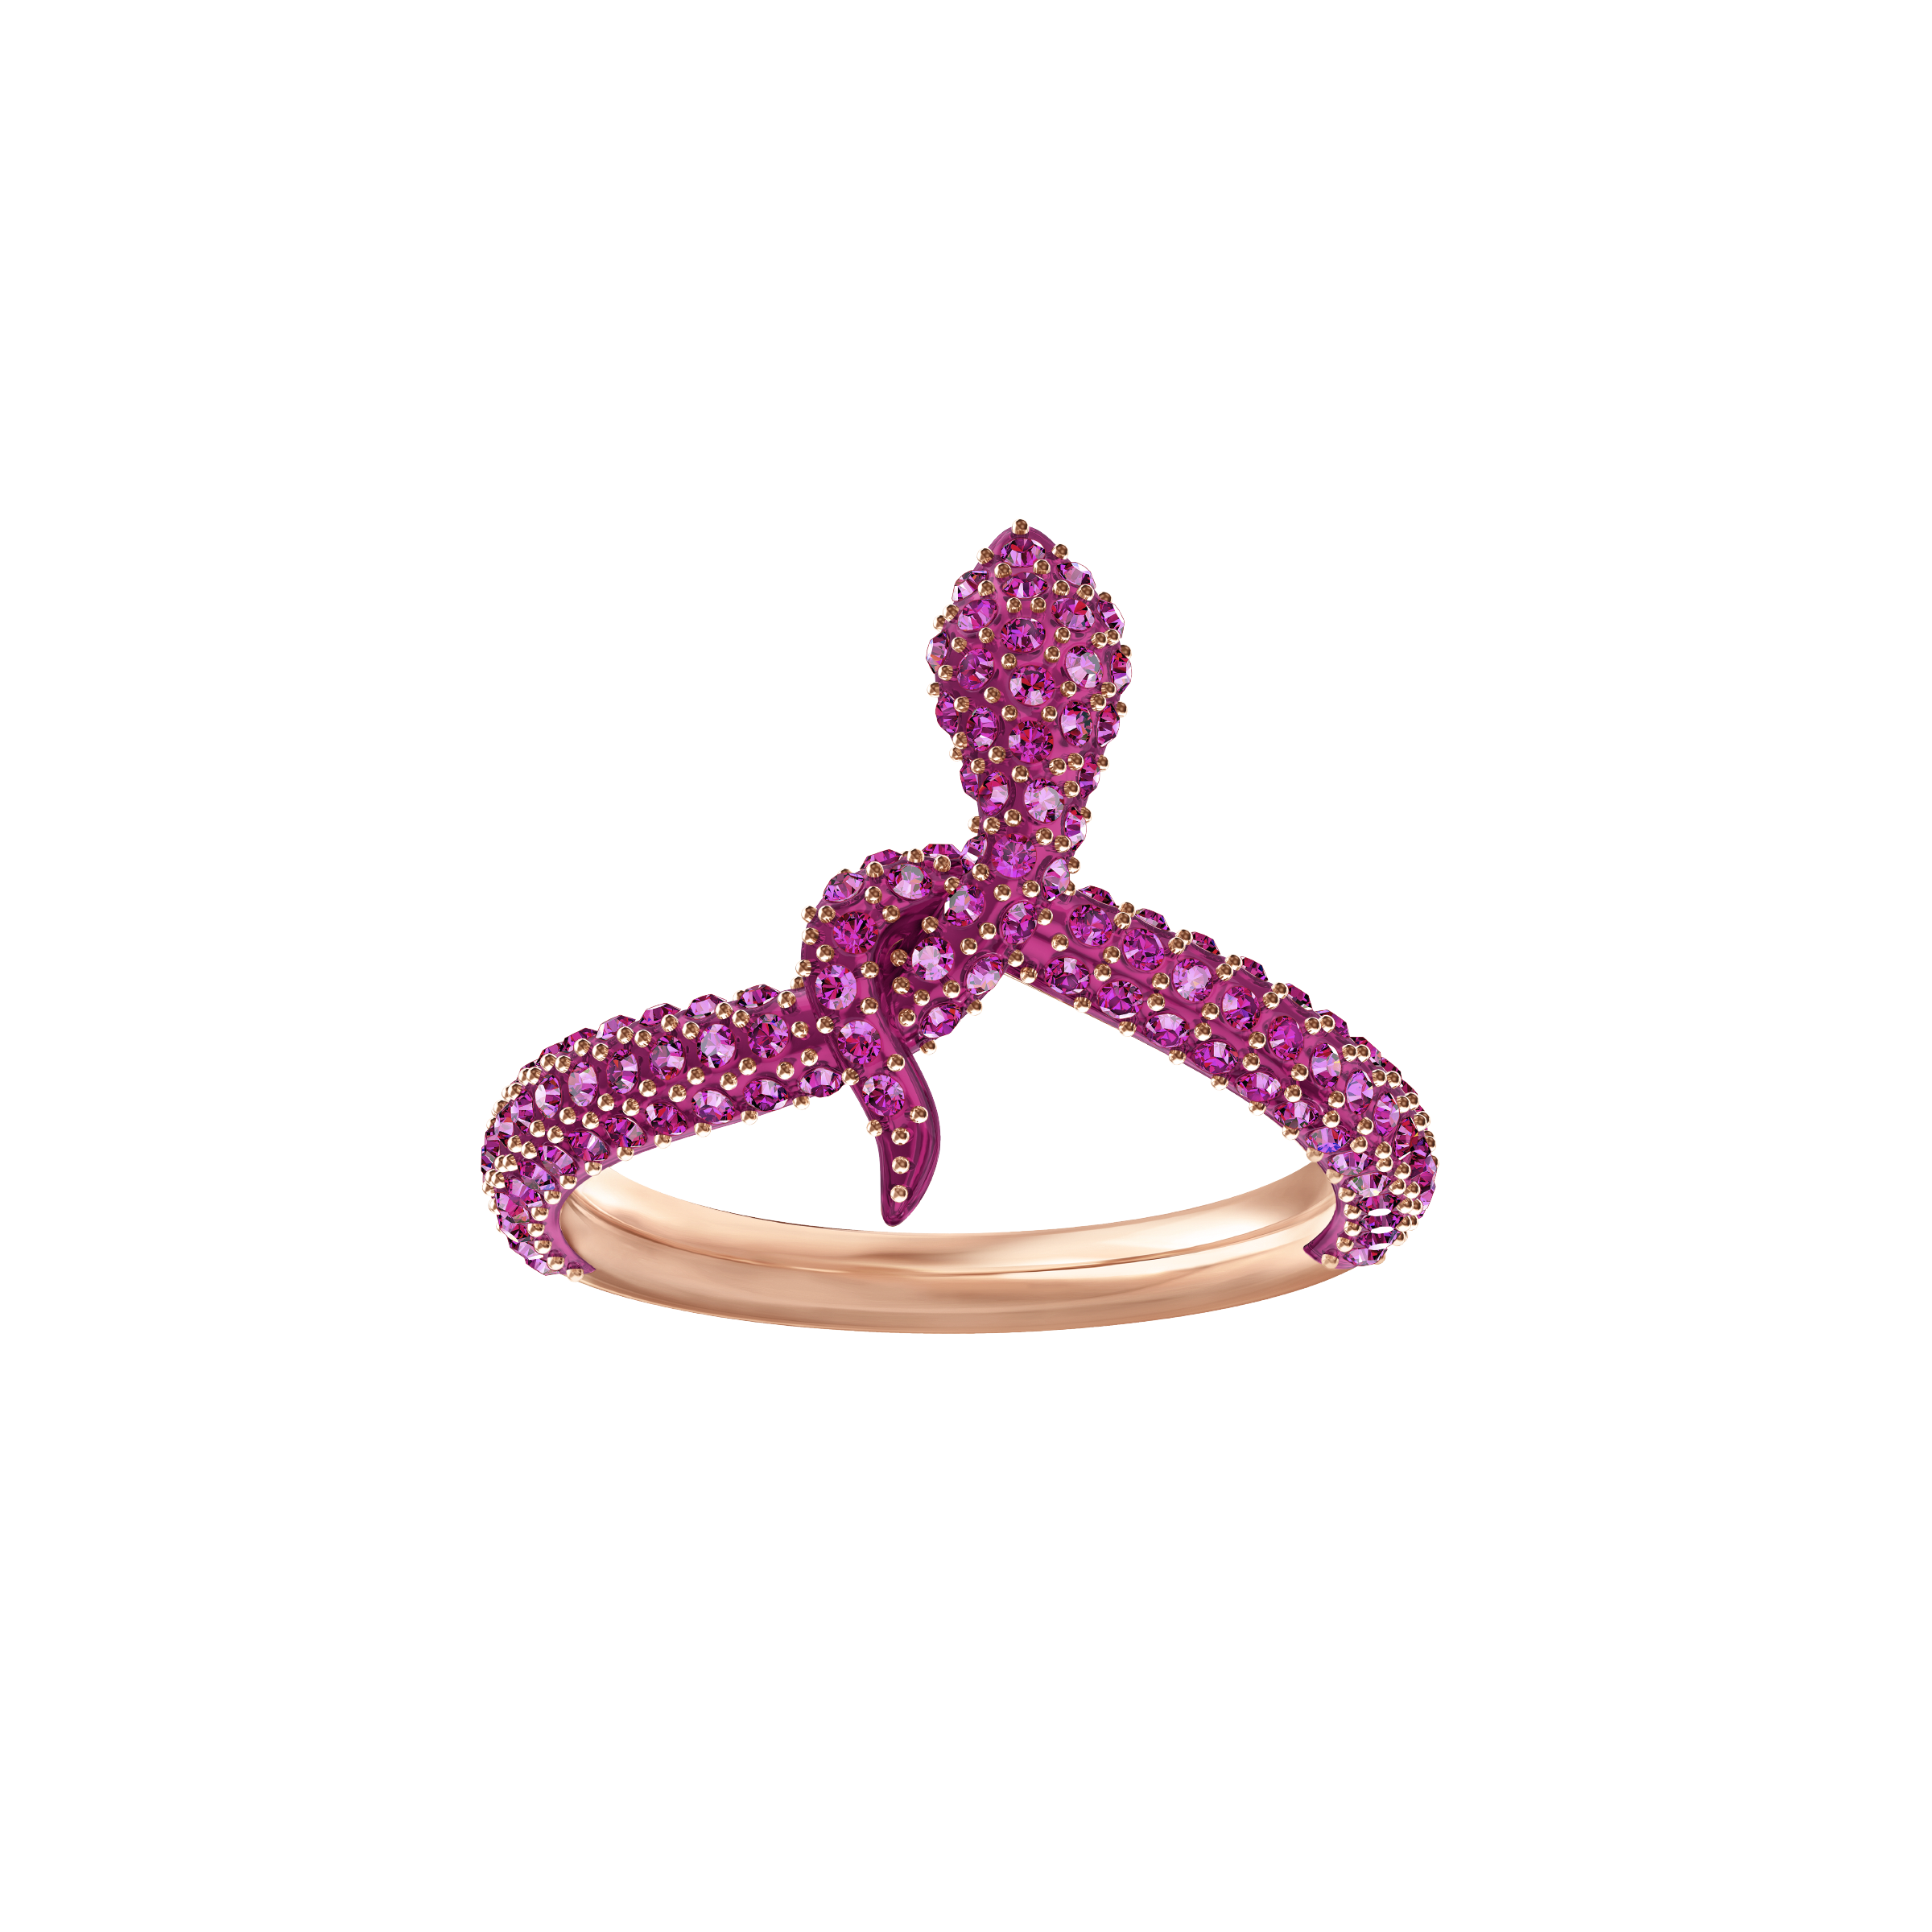 Leslie Motif Ring, Fuchsia, Rose Gold Plating